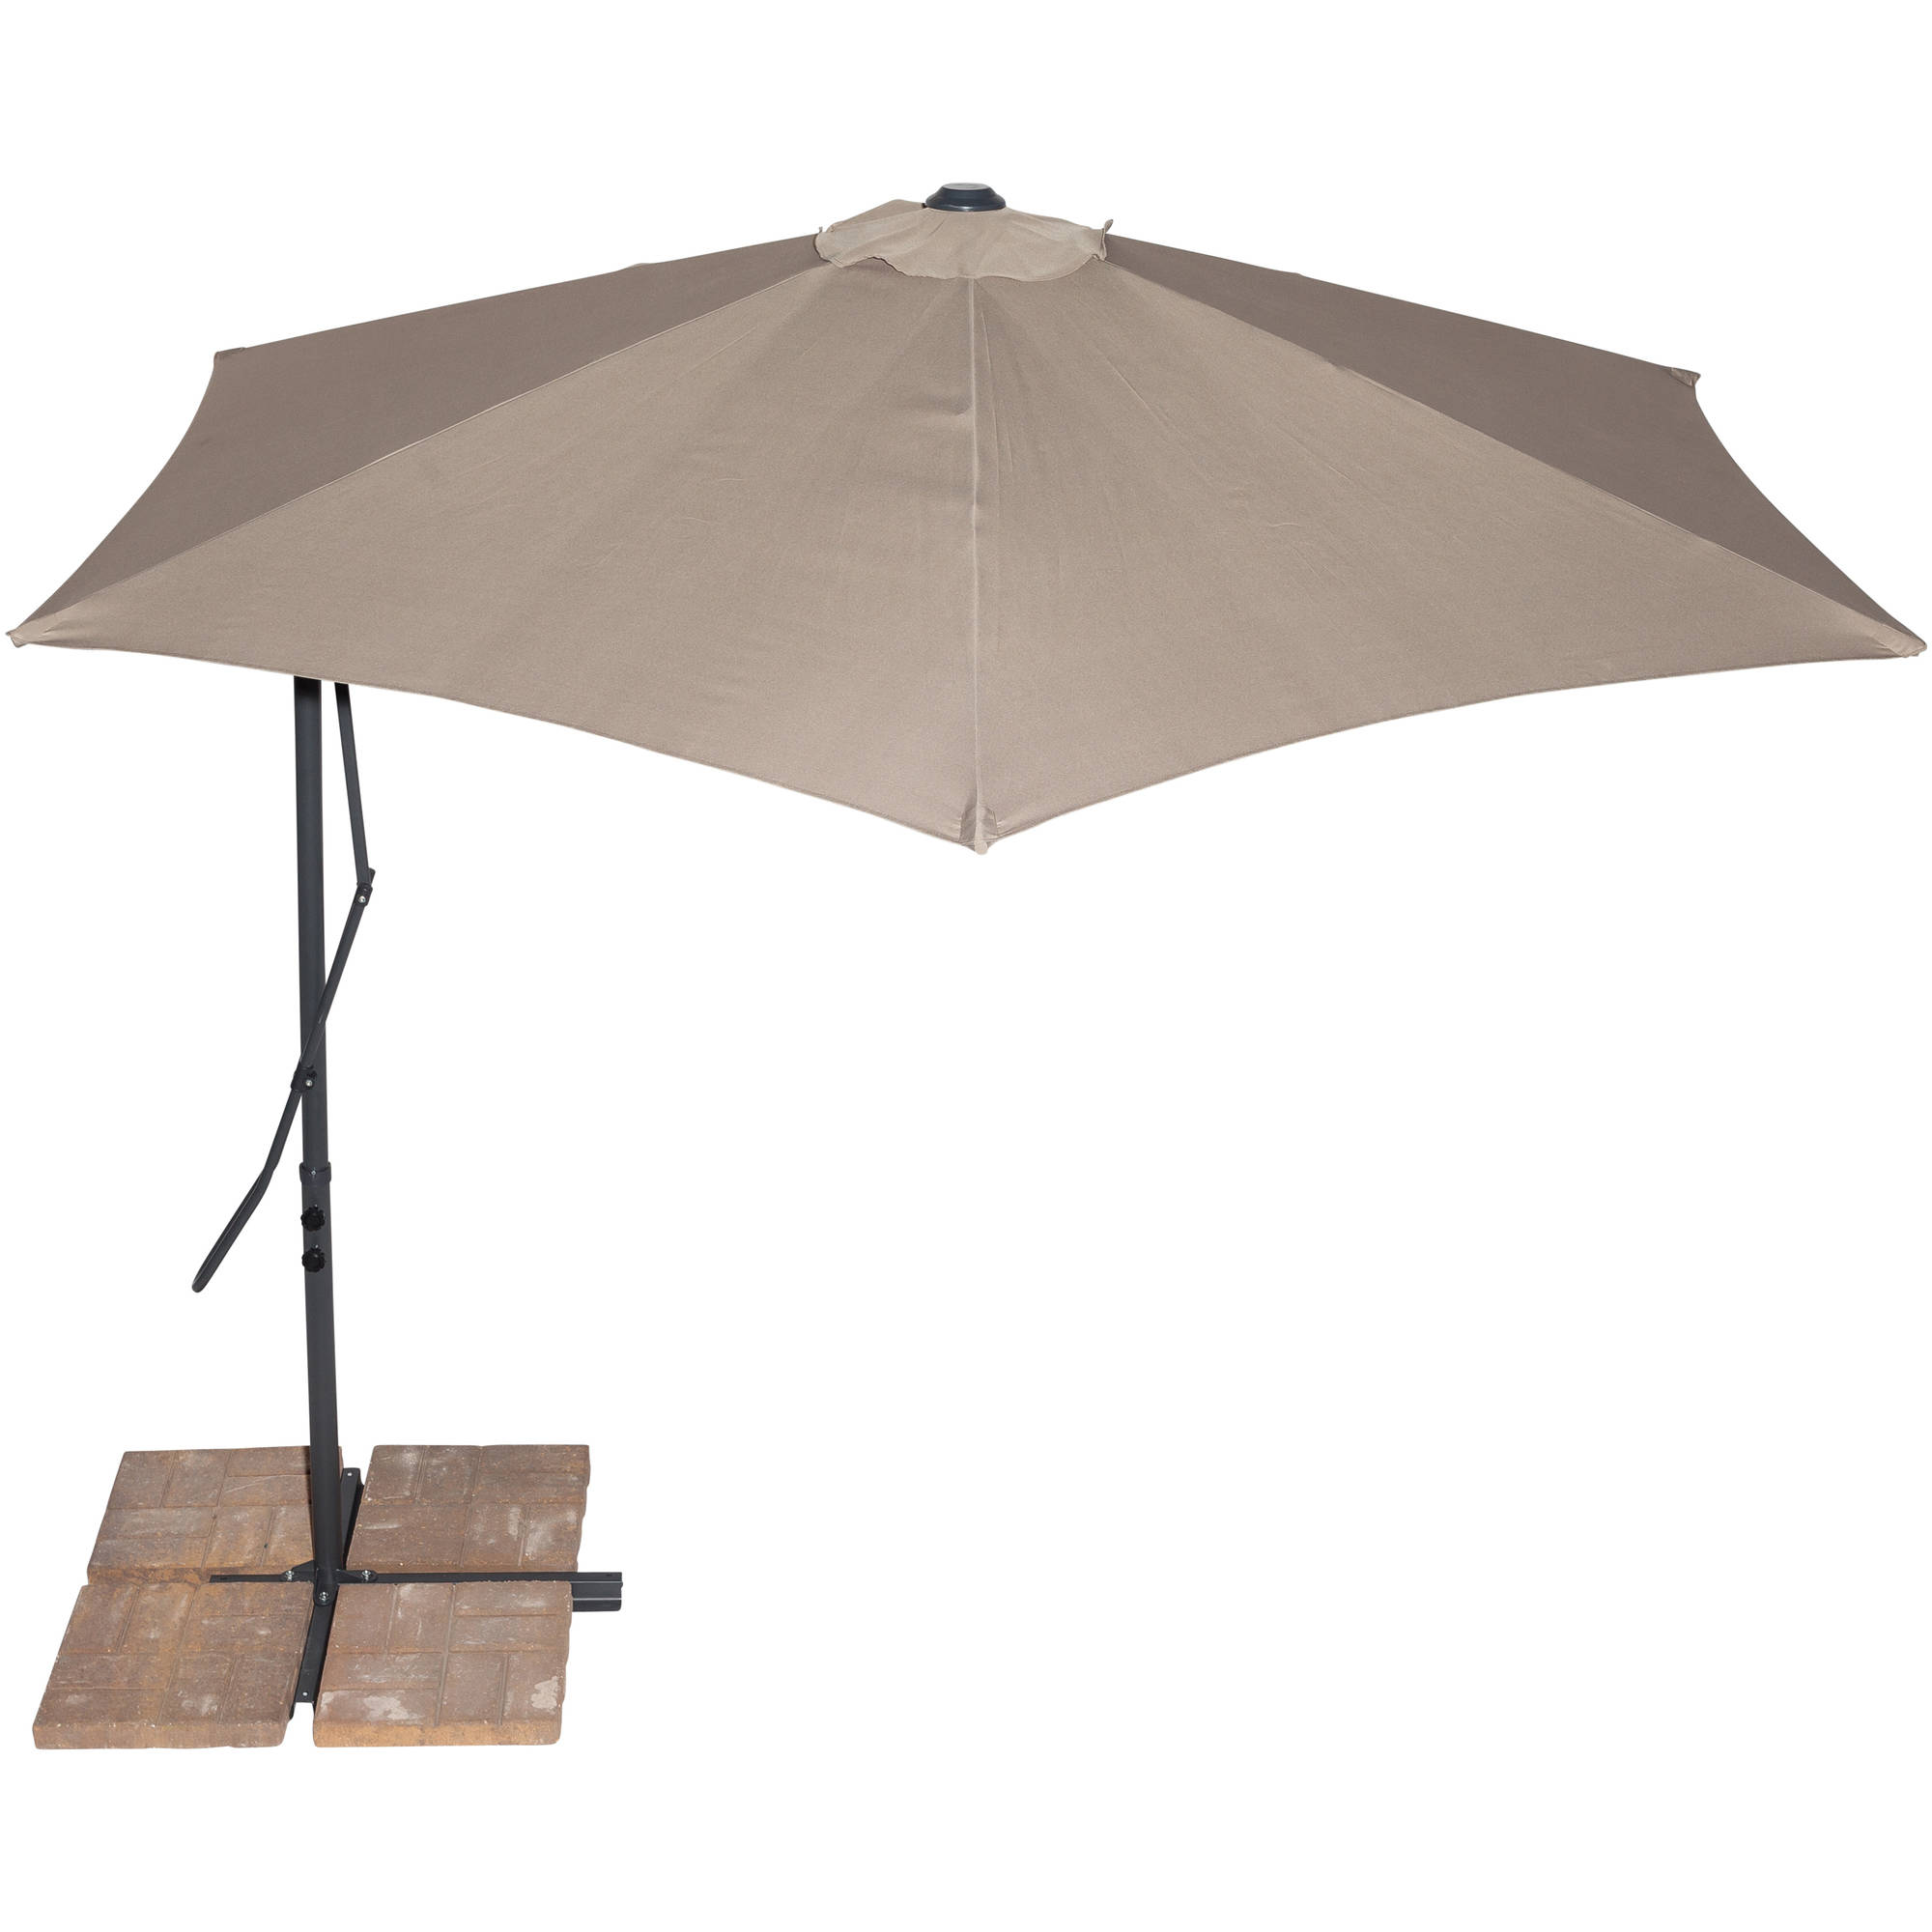 California Sun Shades 10' Cantilever Umbrella, Tan by Outdoor Umbrellas